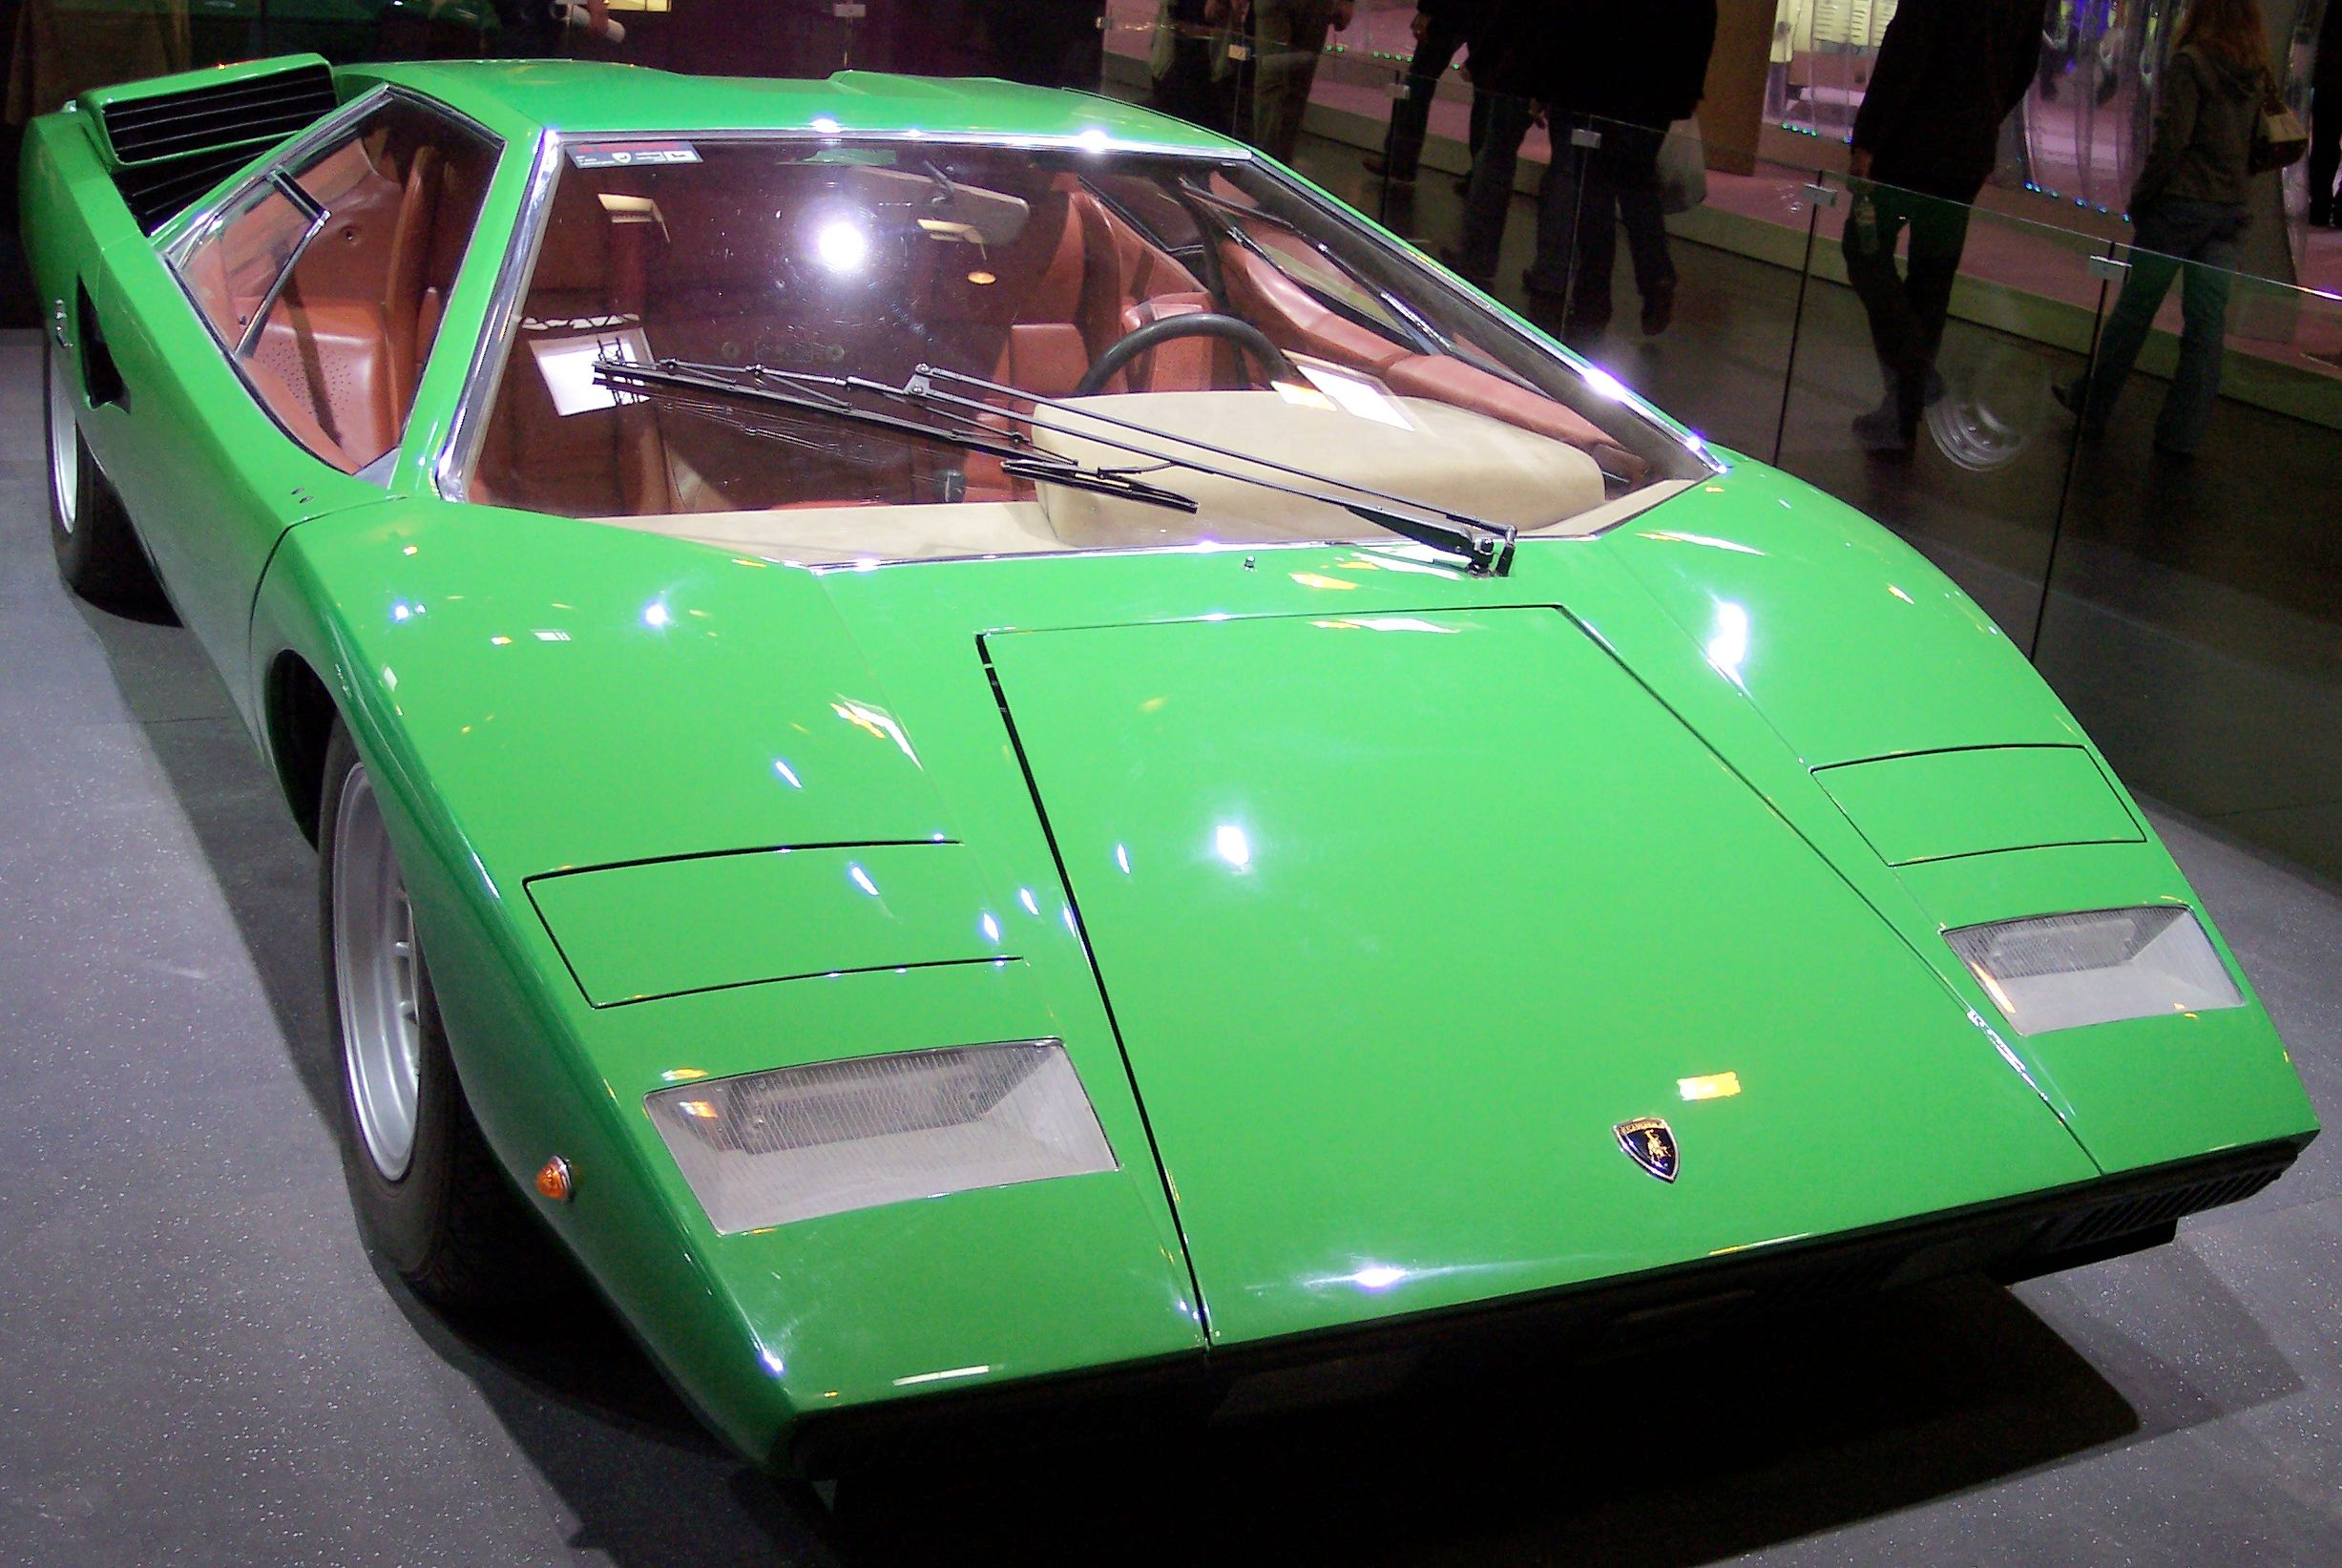 File Lamborghini Countach Green Vr Tce Jpg Wikimedia Commons